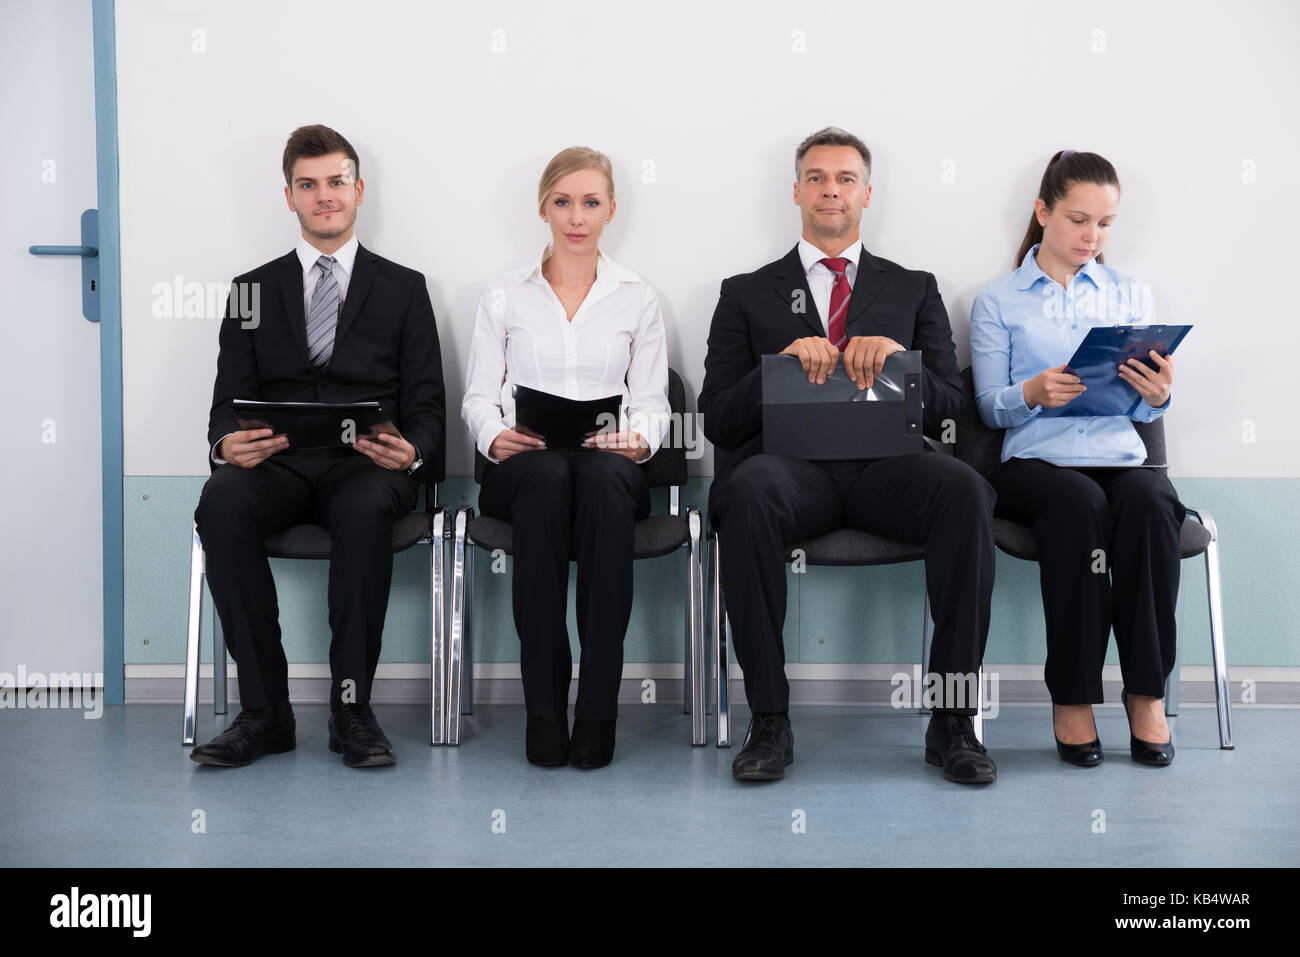 Group Of Businesspeople With Files Sitting On Chair For Giving Interview - Stock Image